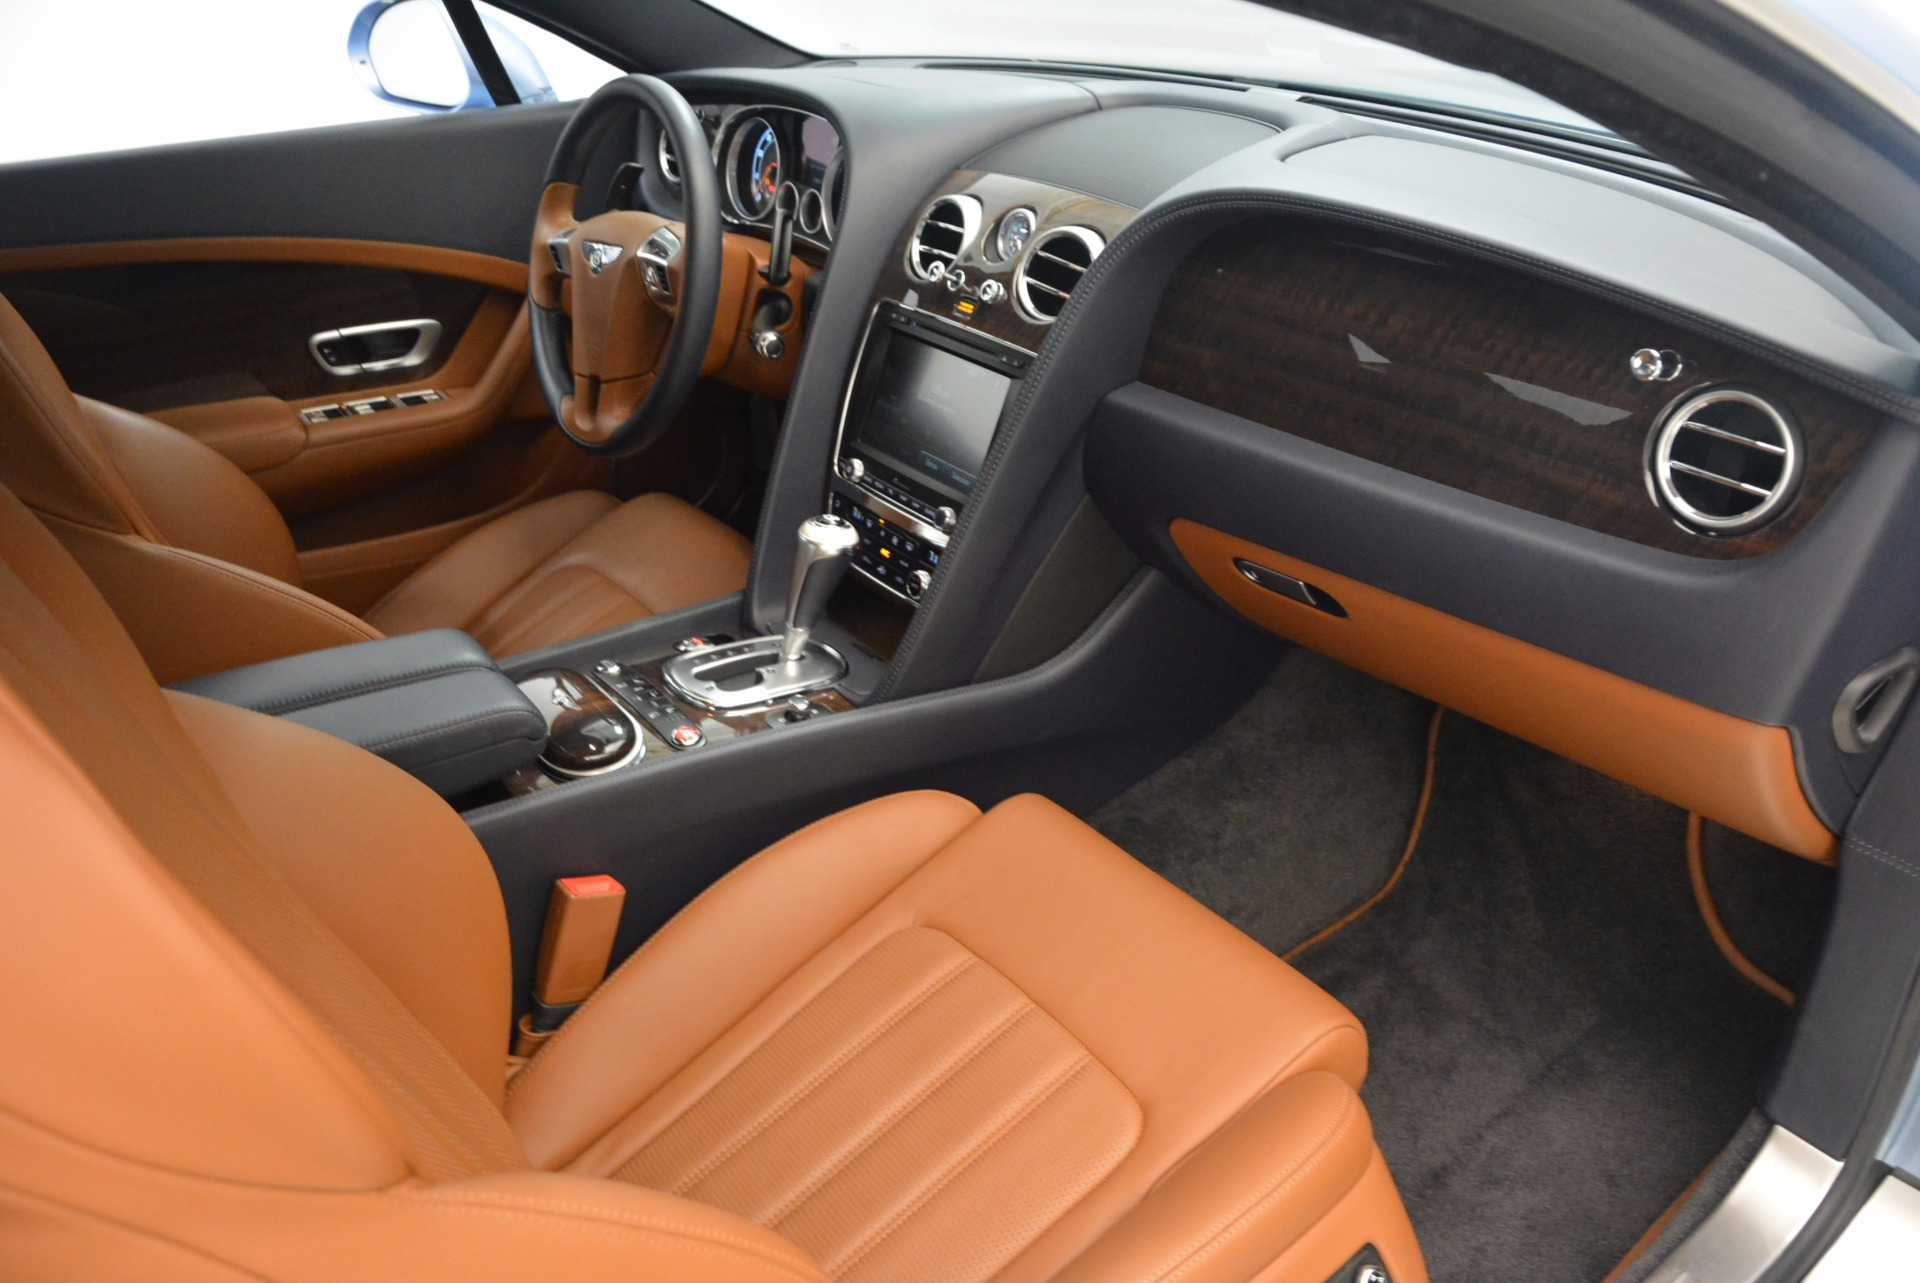 Used 2015 Bentley Continental GT V8 S For Sale In Greenwich, CT. Alfa Romeo of Greenwich, 7273 1507_p33